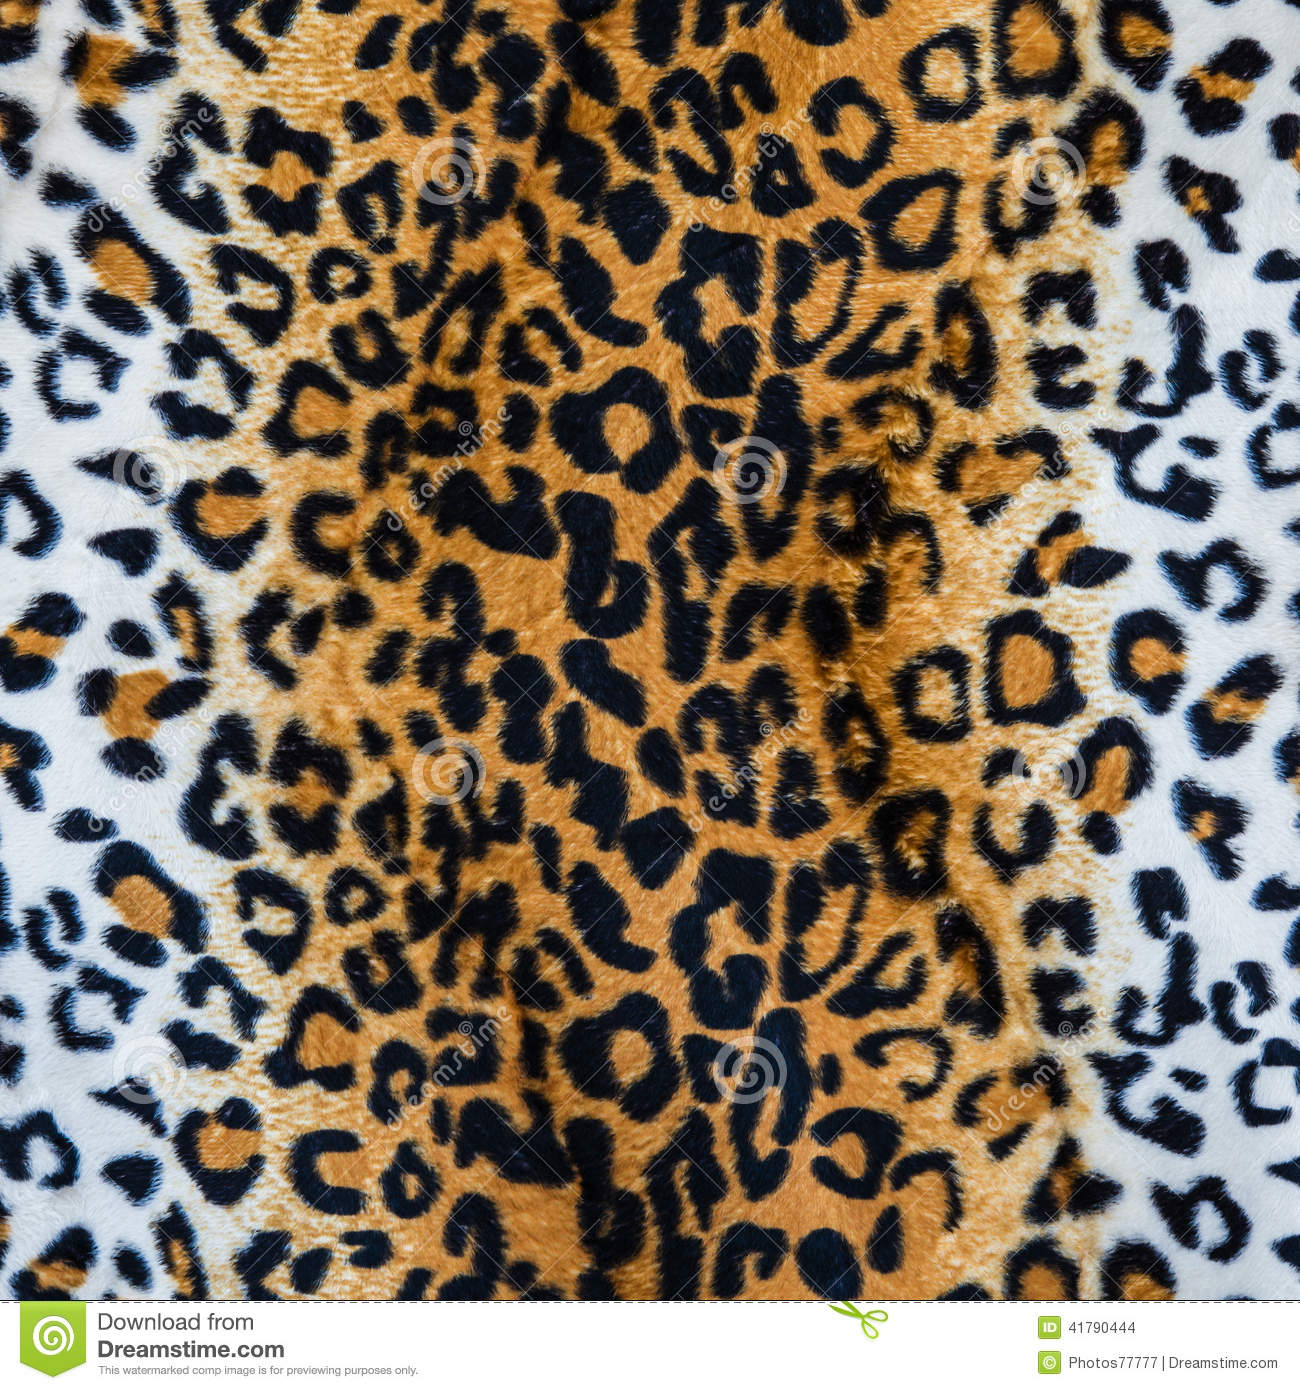 Texture Of Leopard Leather Stock Photo - Image: 41790444